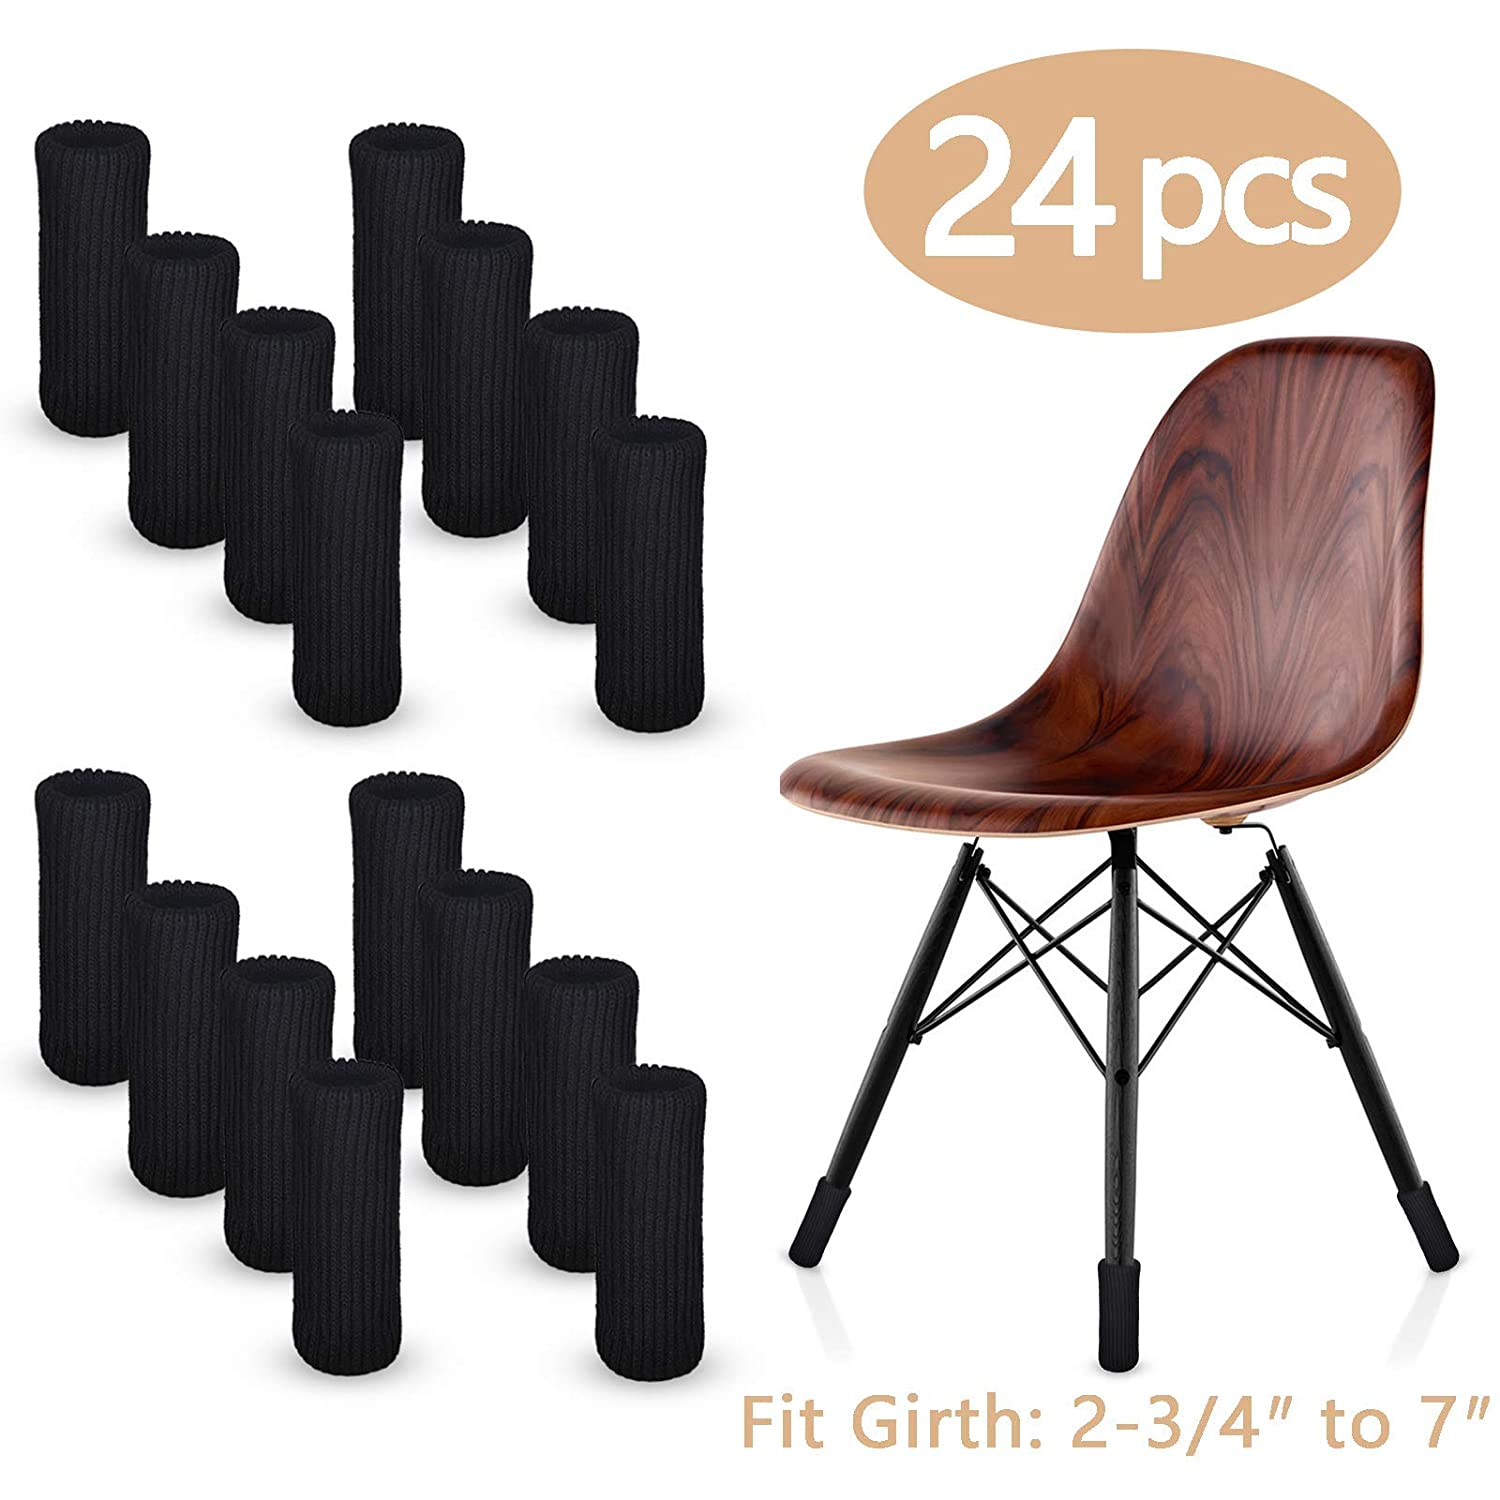 """LimBridge 24pcs Chair Socks, Elastic Wood Floor Furniture Chair Leg Feet Protectors Covers Caps Set, Fit Girth from 4"""""""" to 7"""""""", Vertical Knitted Black."""